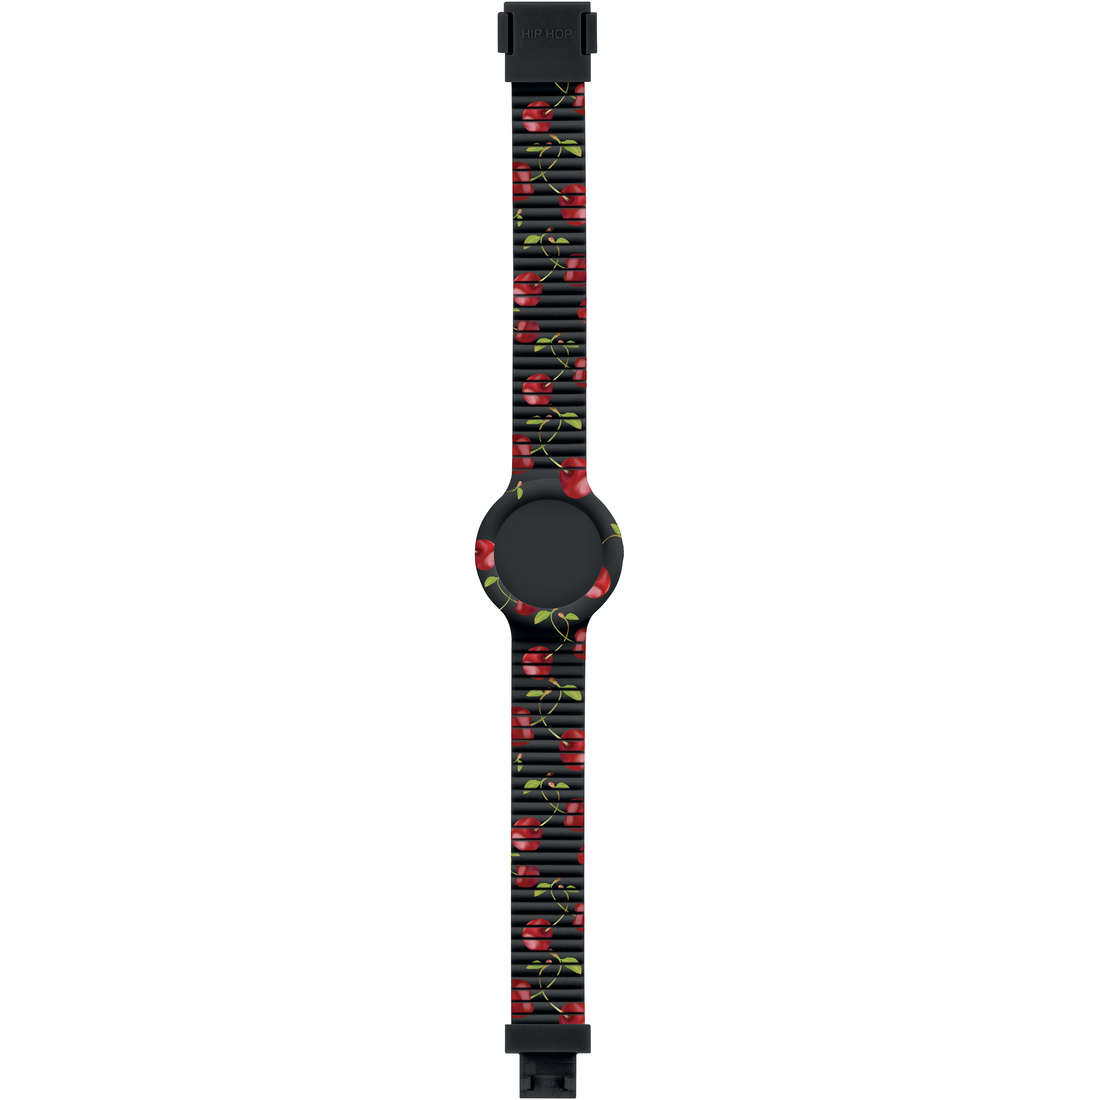 watch watch strap woman Hip Hop Fruit HBU0670